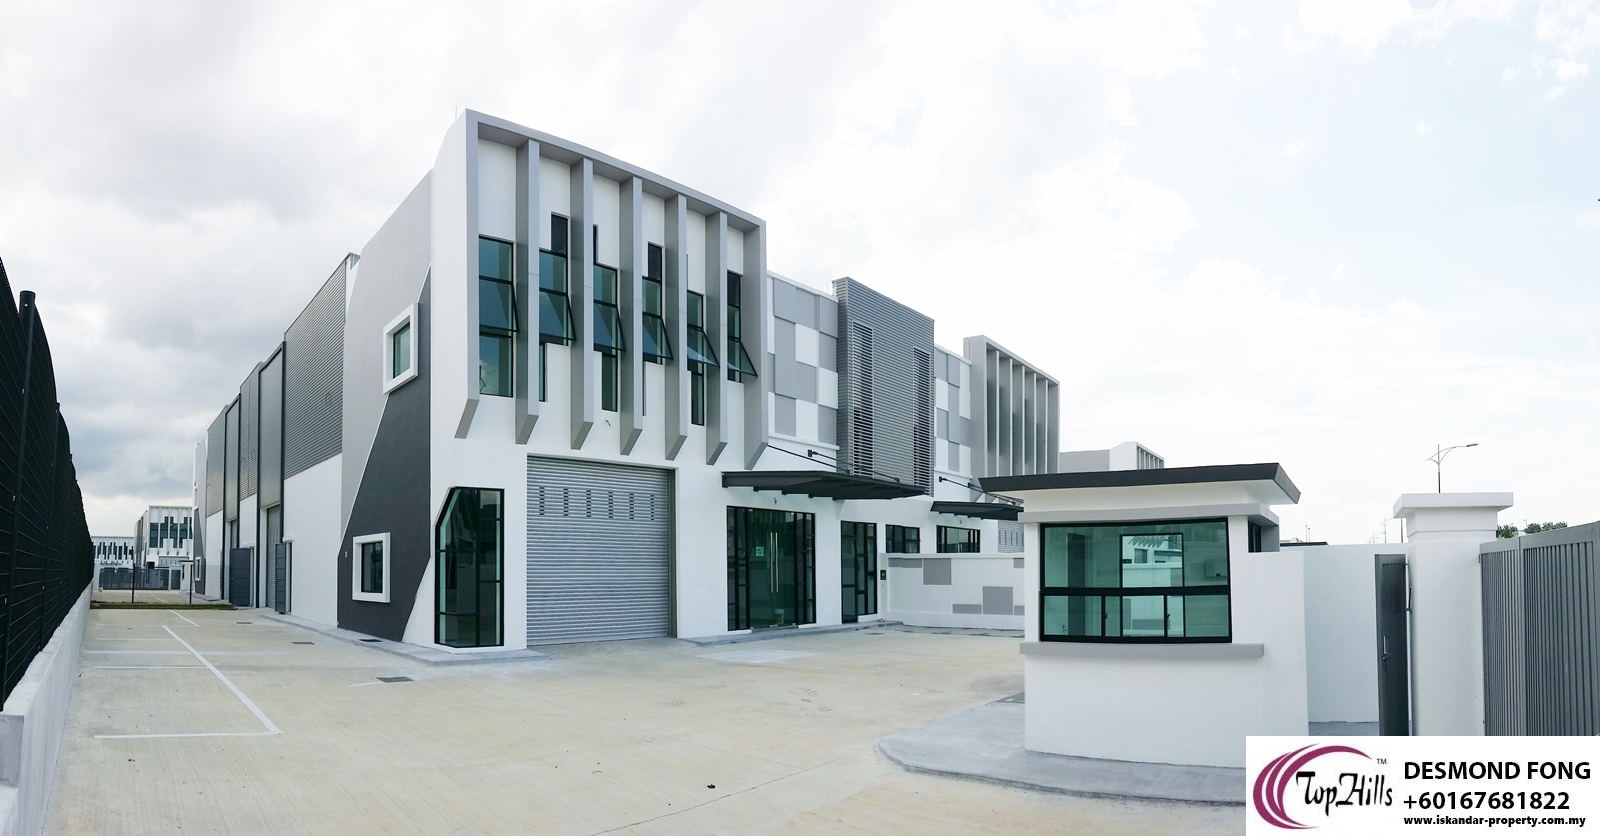 VALUE BUY NEW ECO BUSINESS PARK 1 CLUSTER FACTORY